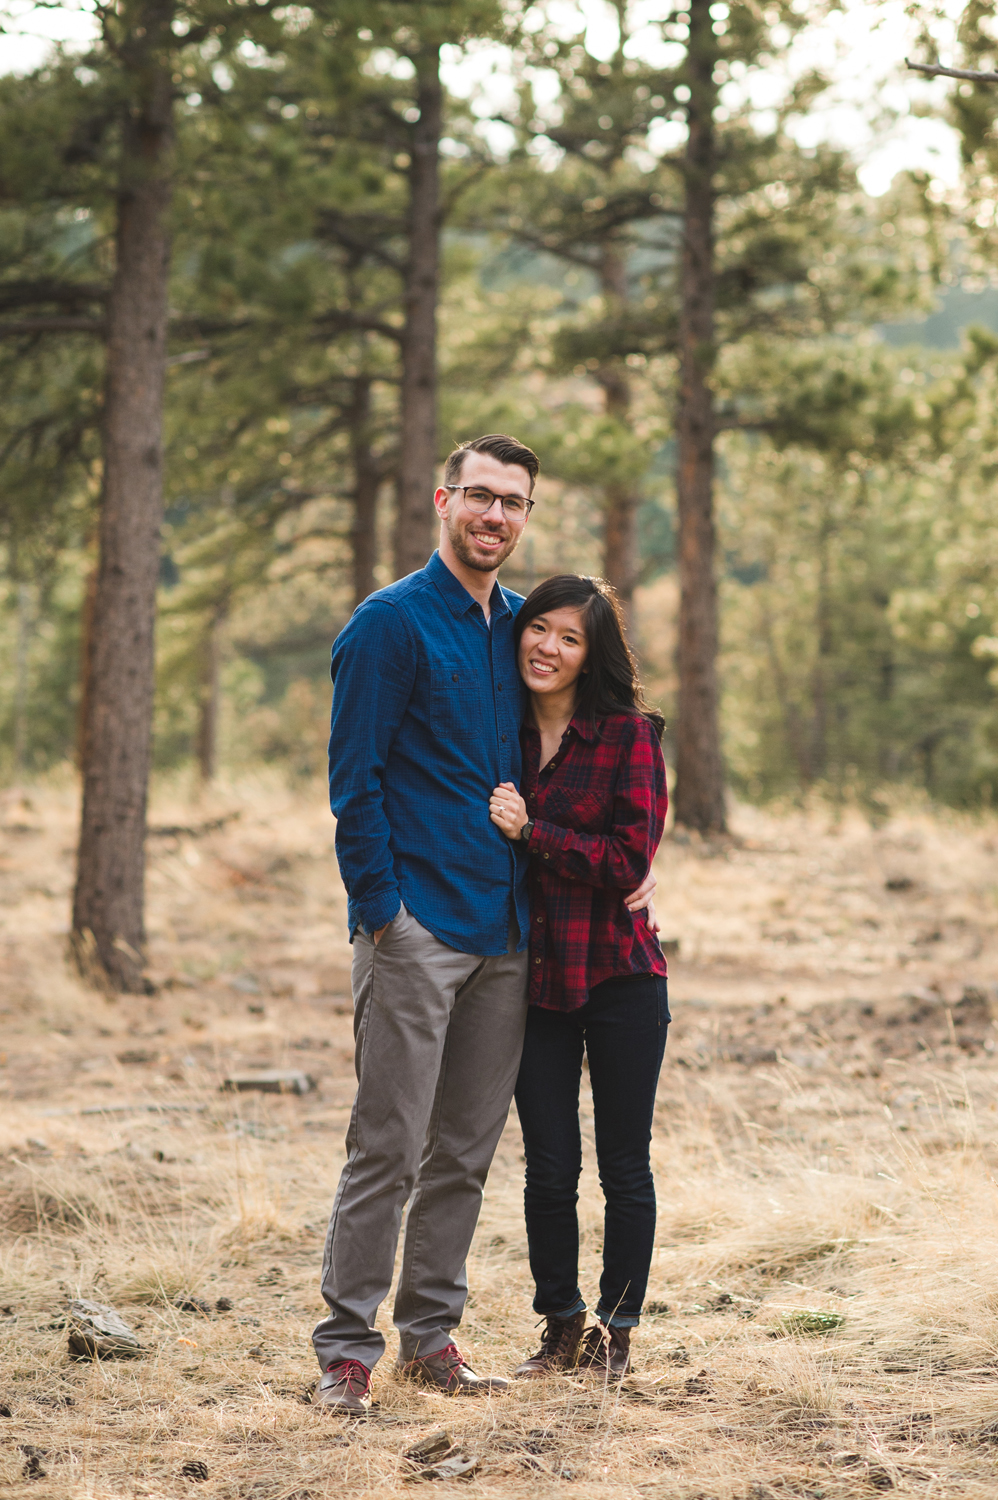 TiffanyandMark_Engaged_0713_squarespace.jpg